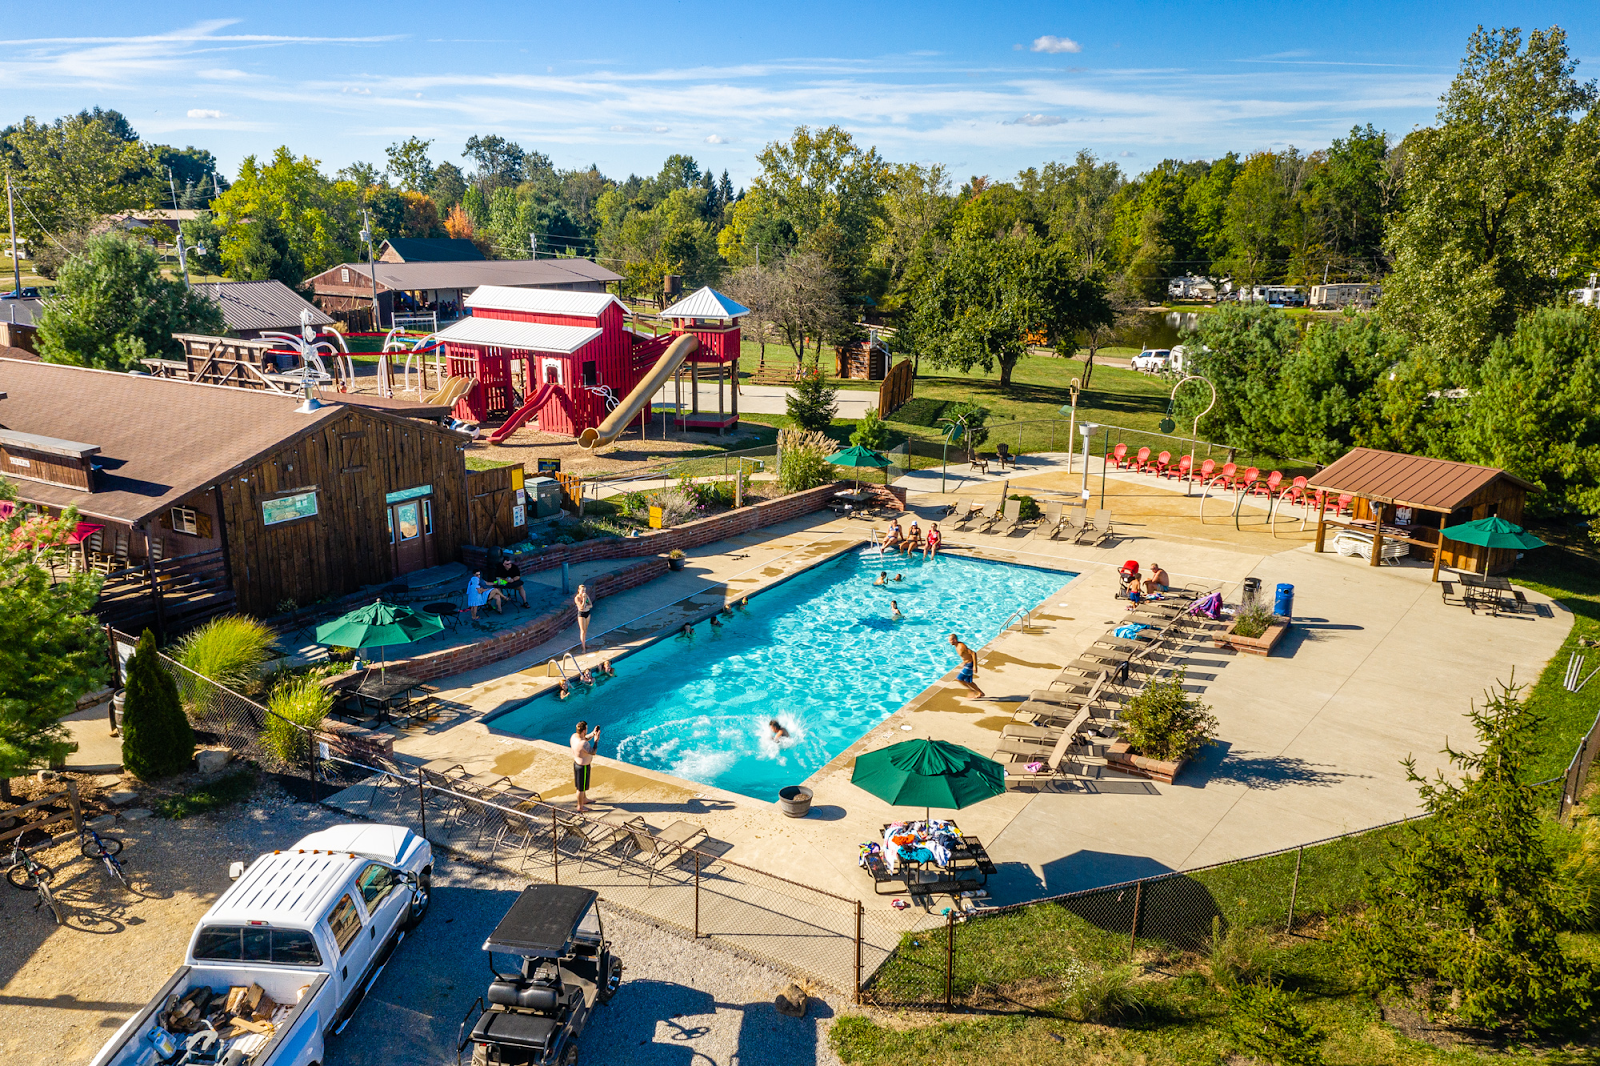 aerial view of the pool of the KOA campground